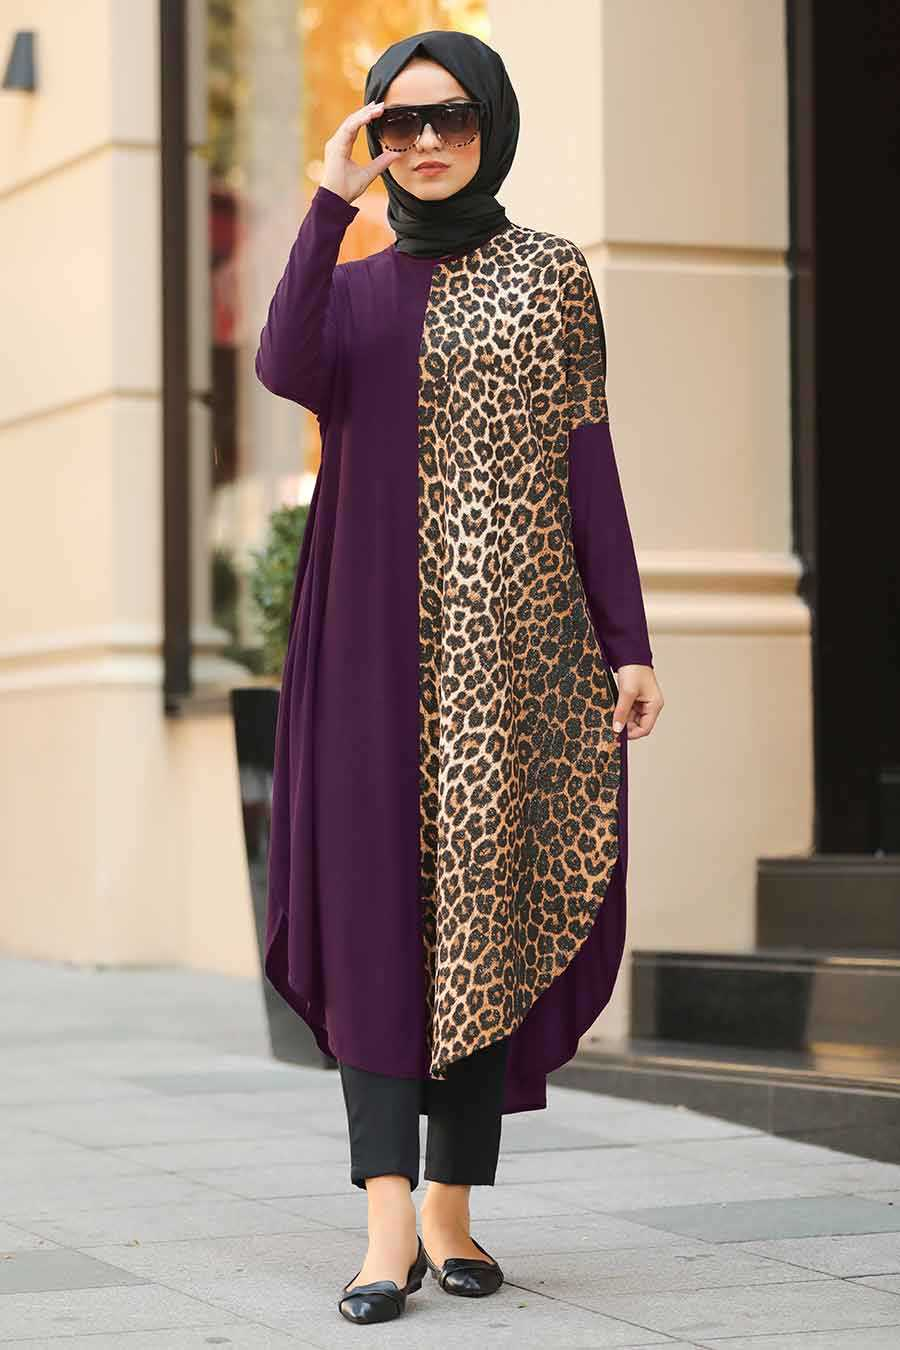 Leopared Patterned Purple Hijab Tunic 4968MOR